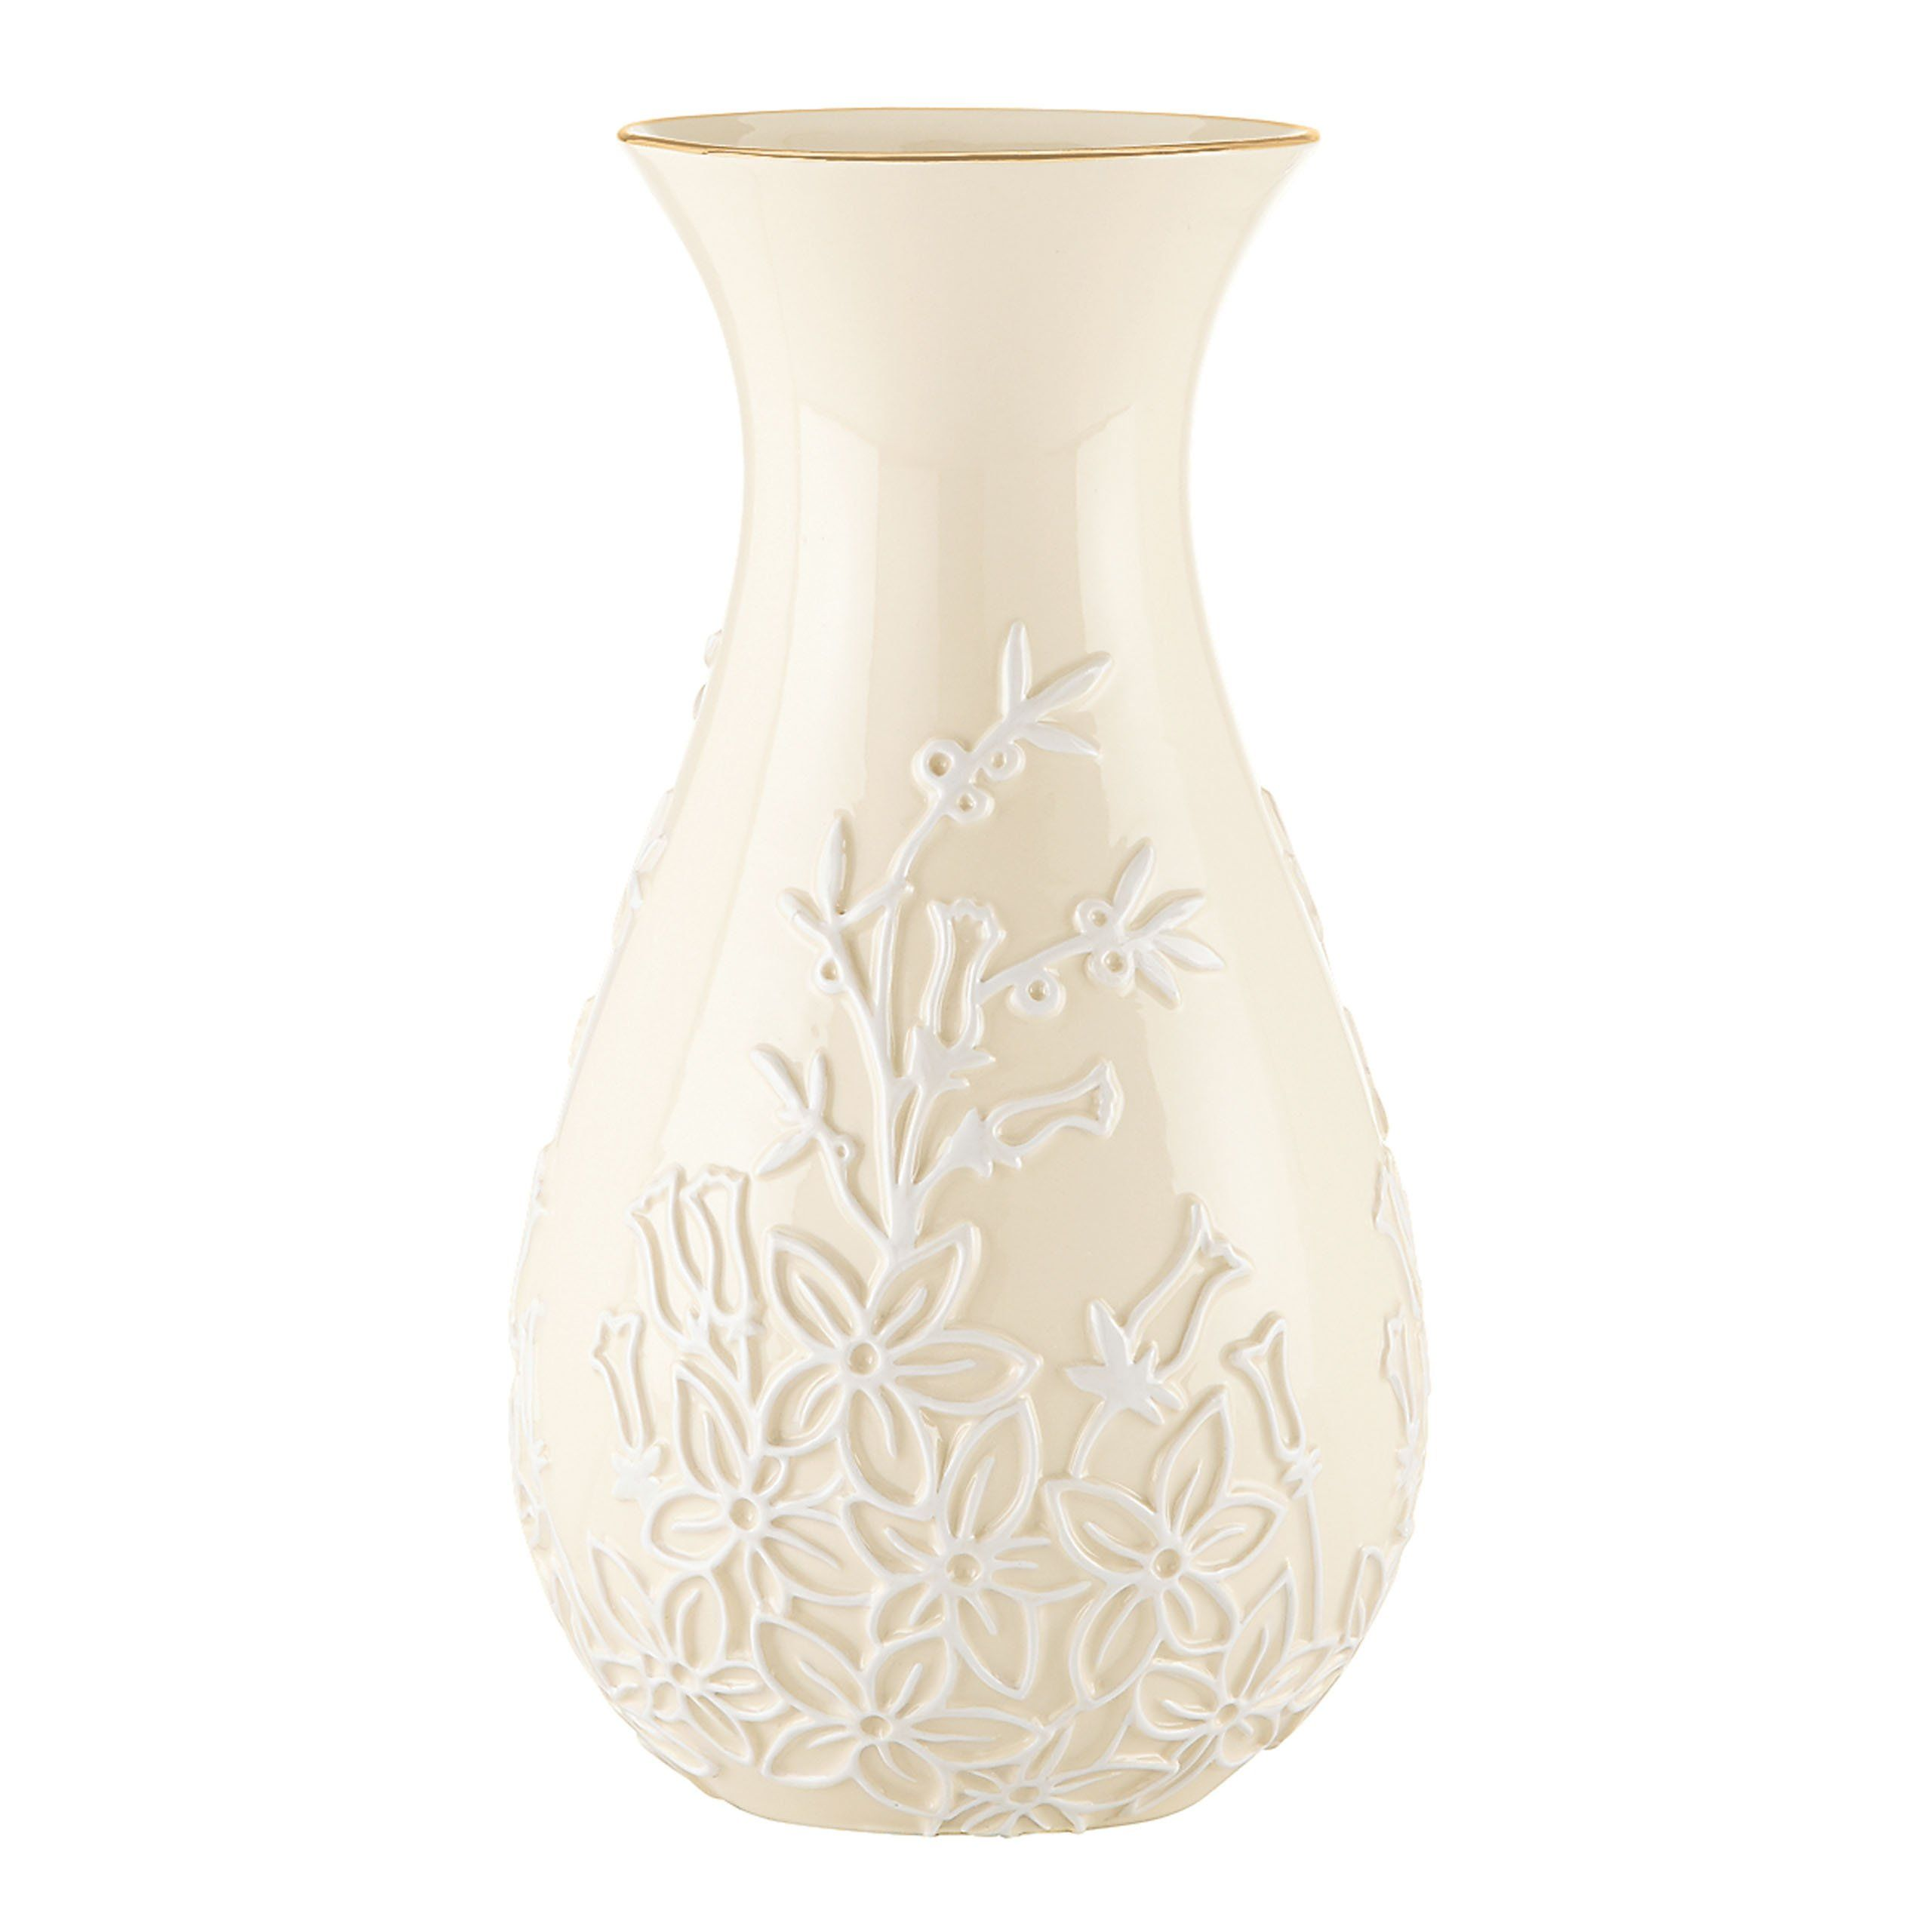 Lenox stephanotis vase 10 inch crafted of lenox fine porcelain porcelain lenox stephanotis vase floridaeventfo Image collections